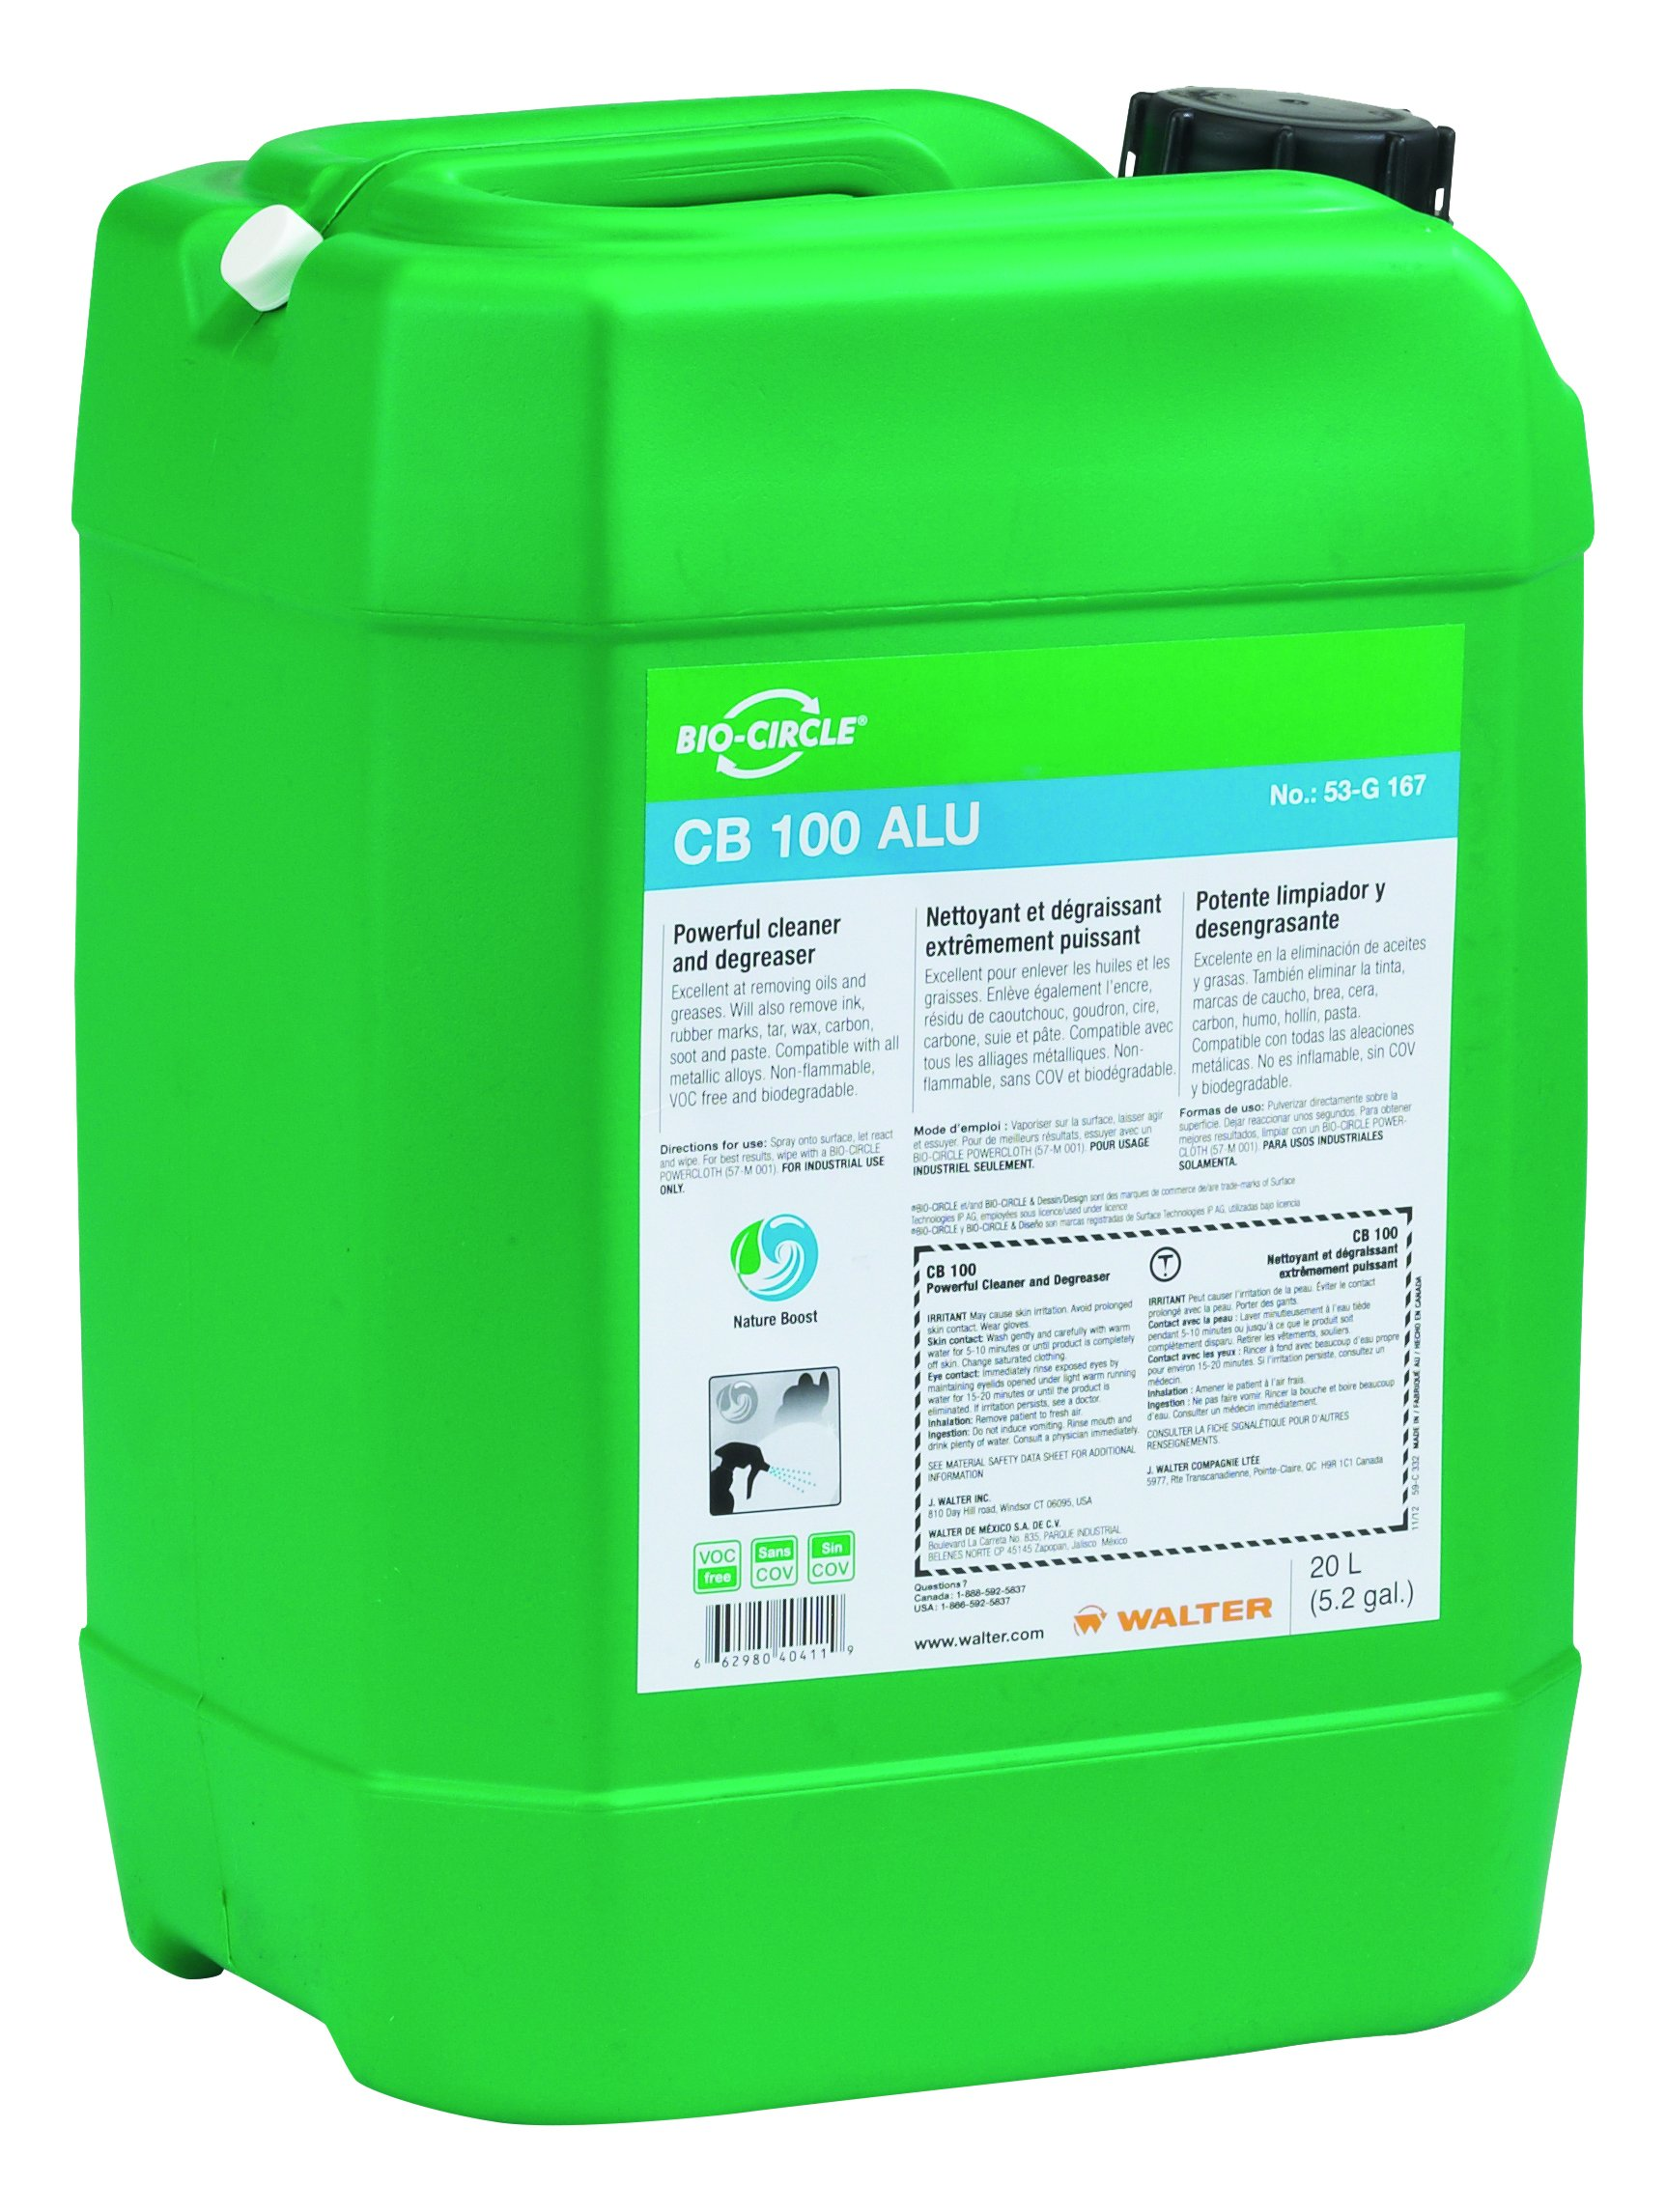 Bio-Circle 53G127 Cleaner and Degreaser - CB 100, 20L Cleaning Solution for Aluminum, Non-Ferrous Alloy. Industrial Degreasers by Bio-Circle